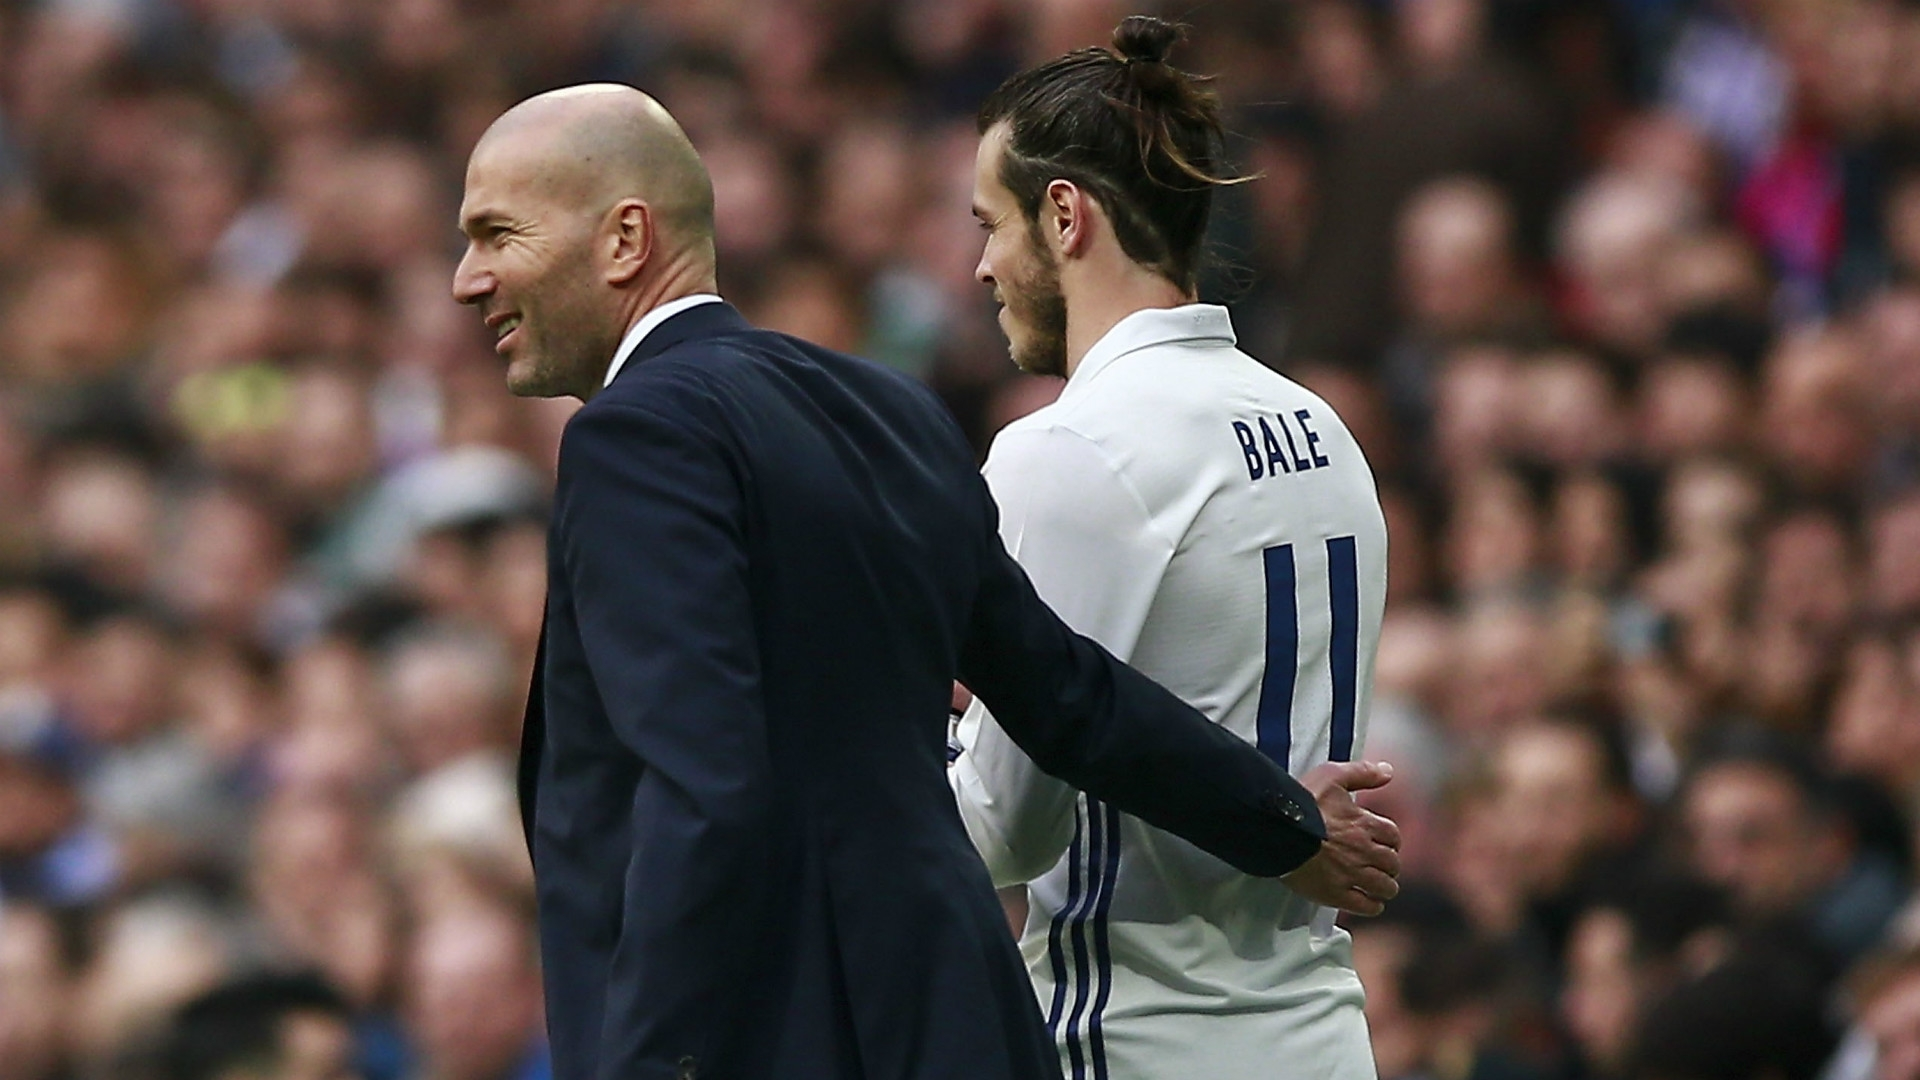 Real Madrid's Zinedine Zidane and midfielder Gareth Bale